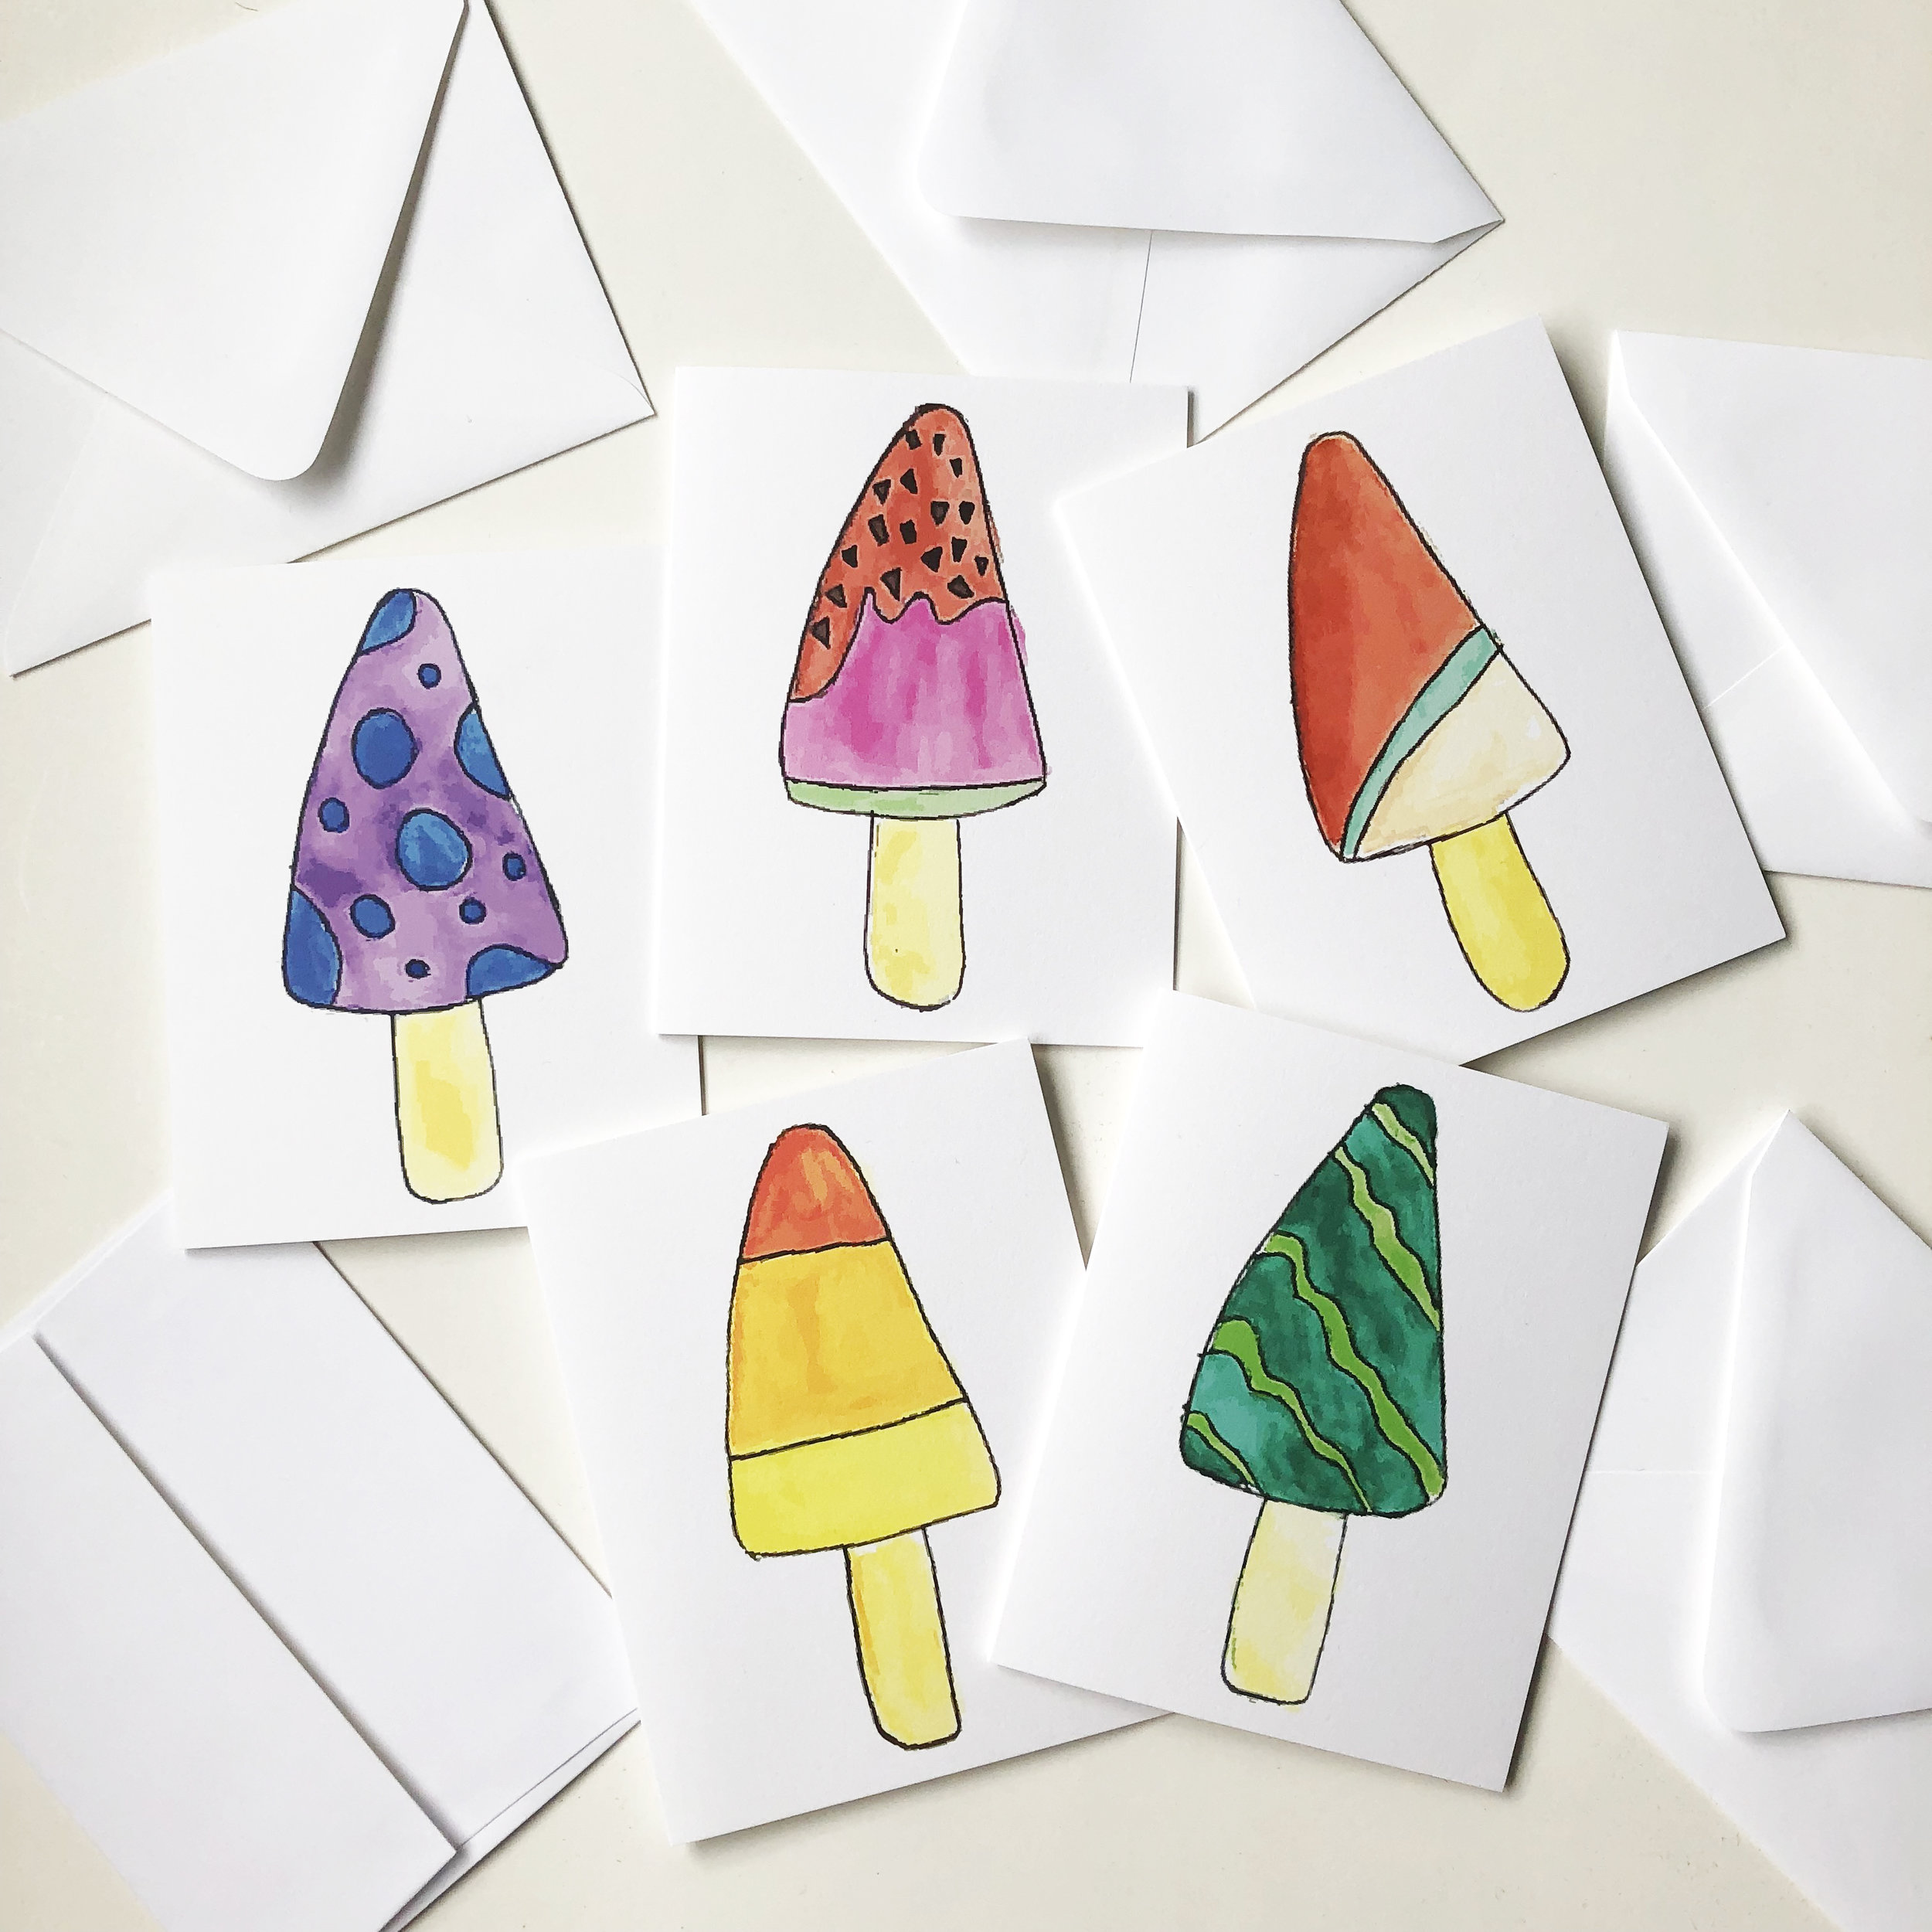 The single popsicle cards are also available in a set of 5.